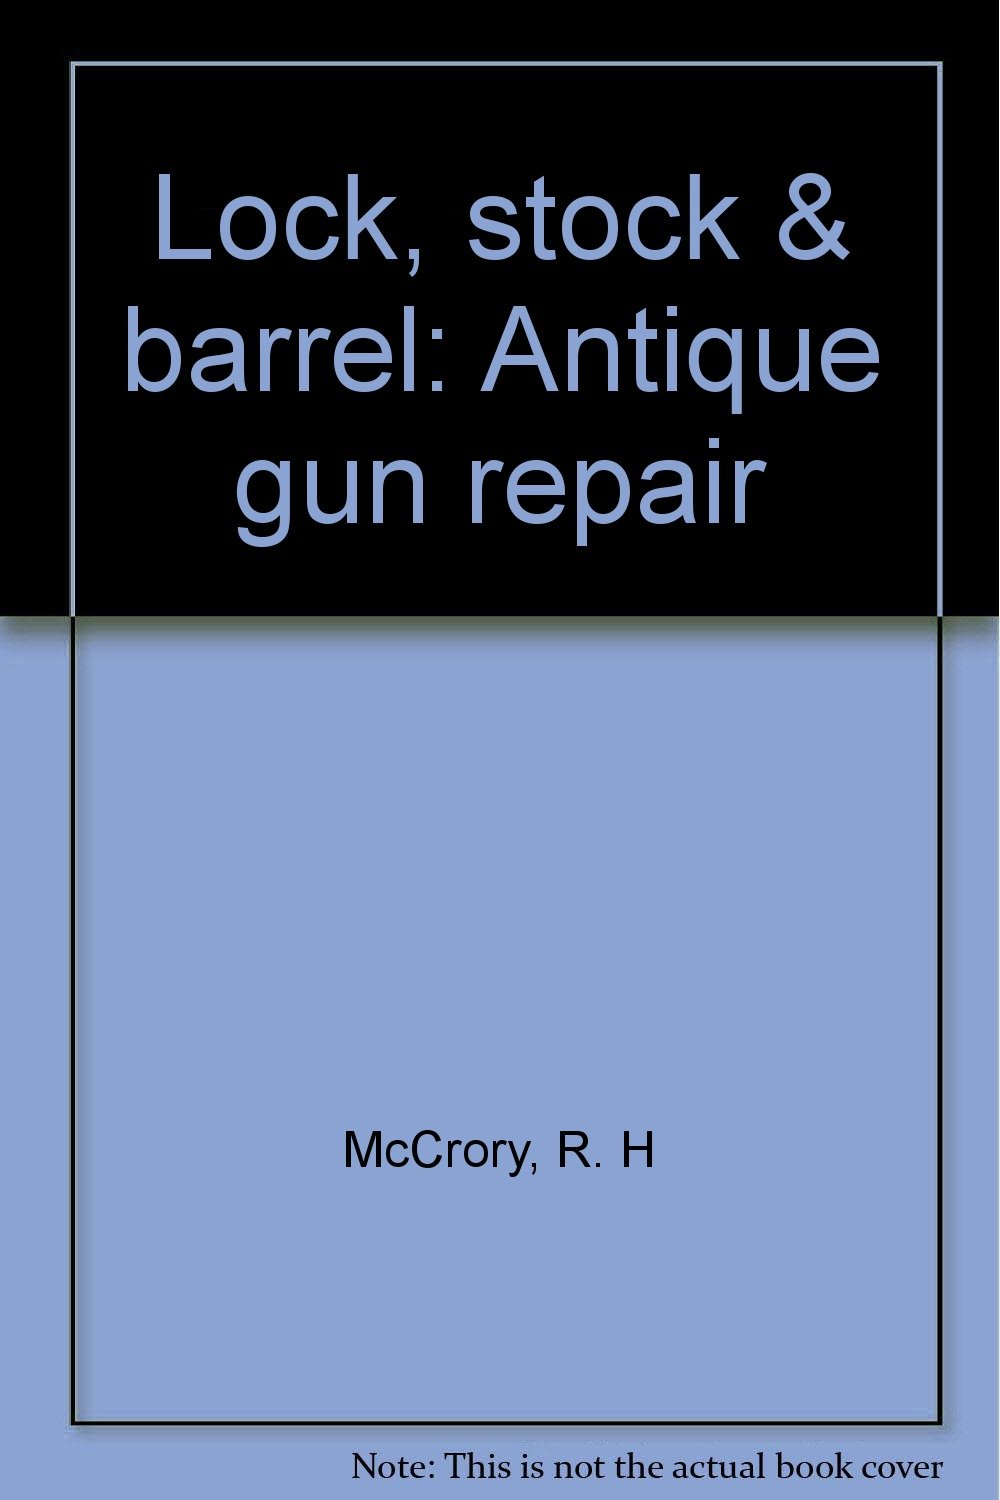 Lock, stock & barrel: Antique gun repair: R. H McCrory: Amazon.com: Books